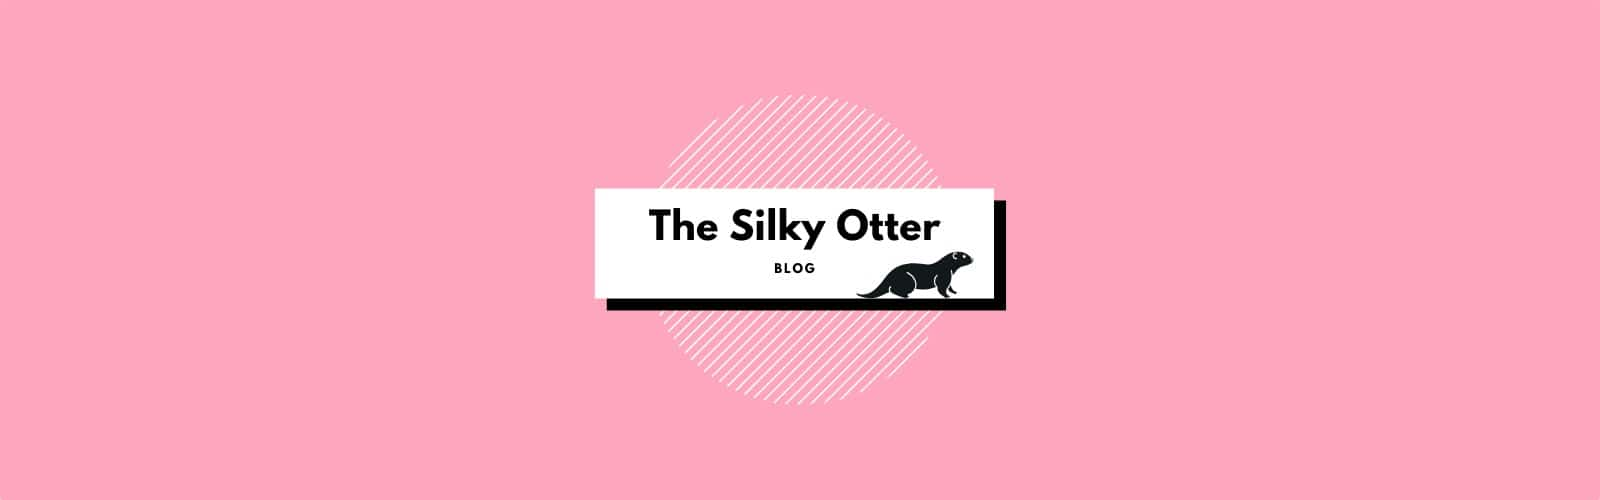 The Silky Otter Blog